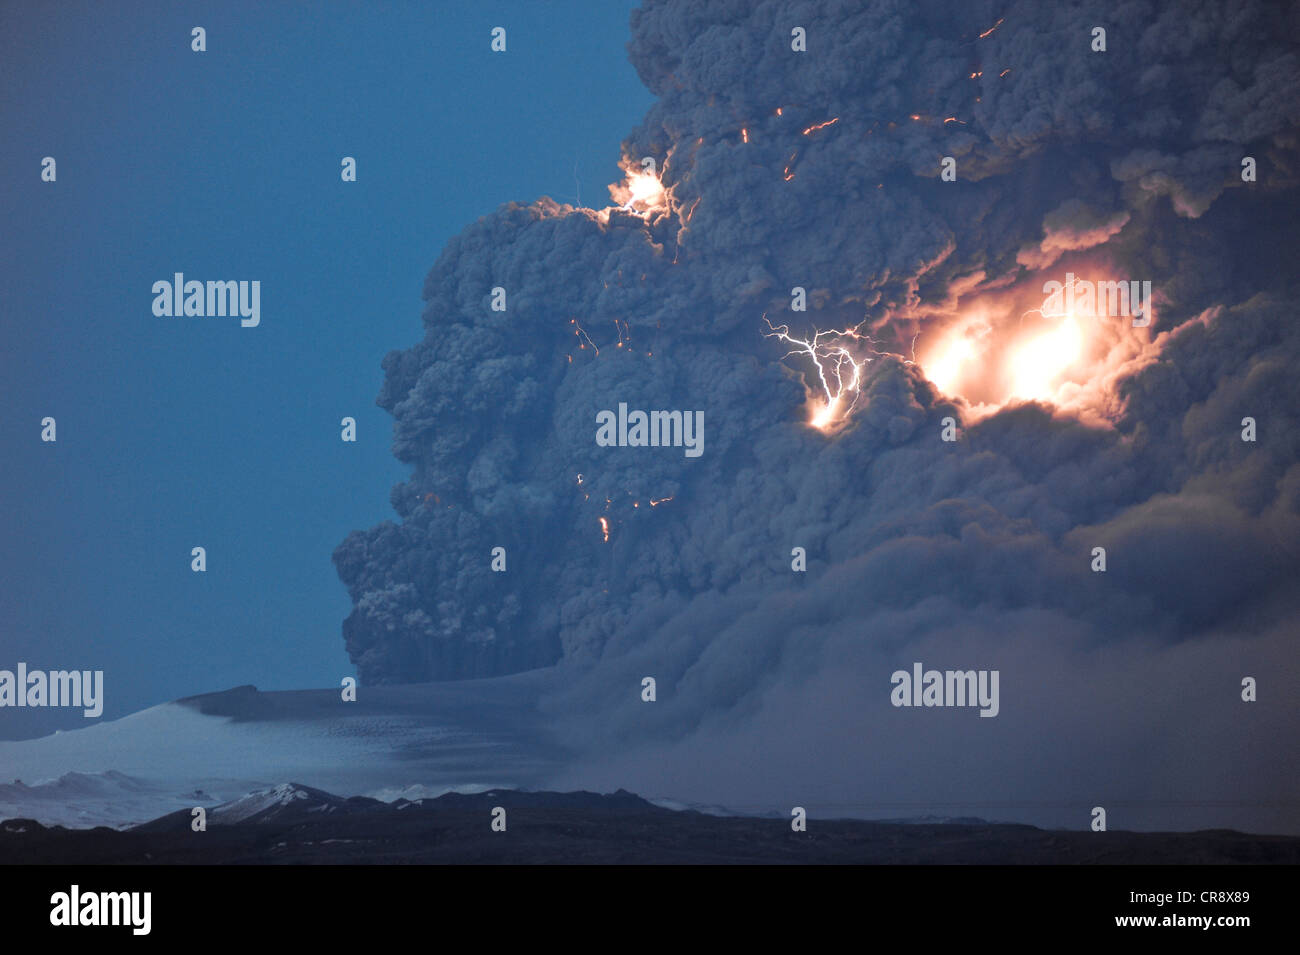 Lightning flashes in a charged cloud of ash from Eyjafjallajoekull Volcano, April 2010, Iceland, Europe - Stock Image